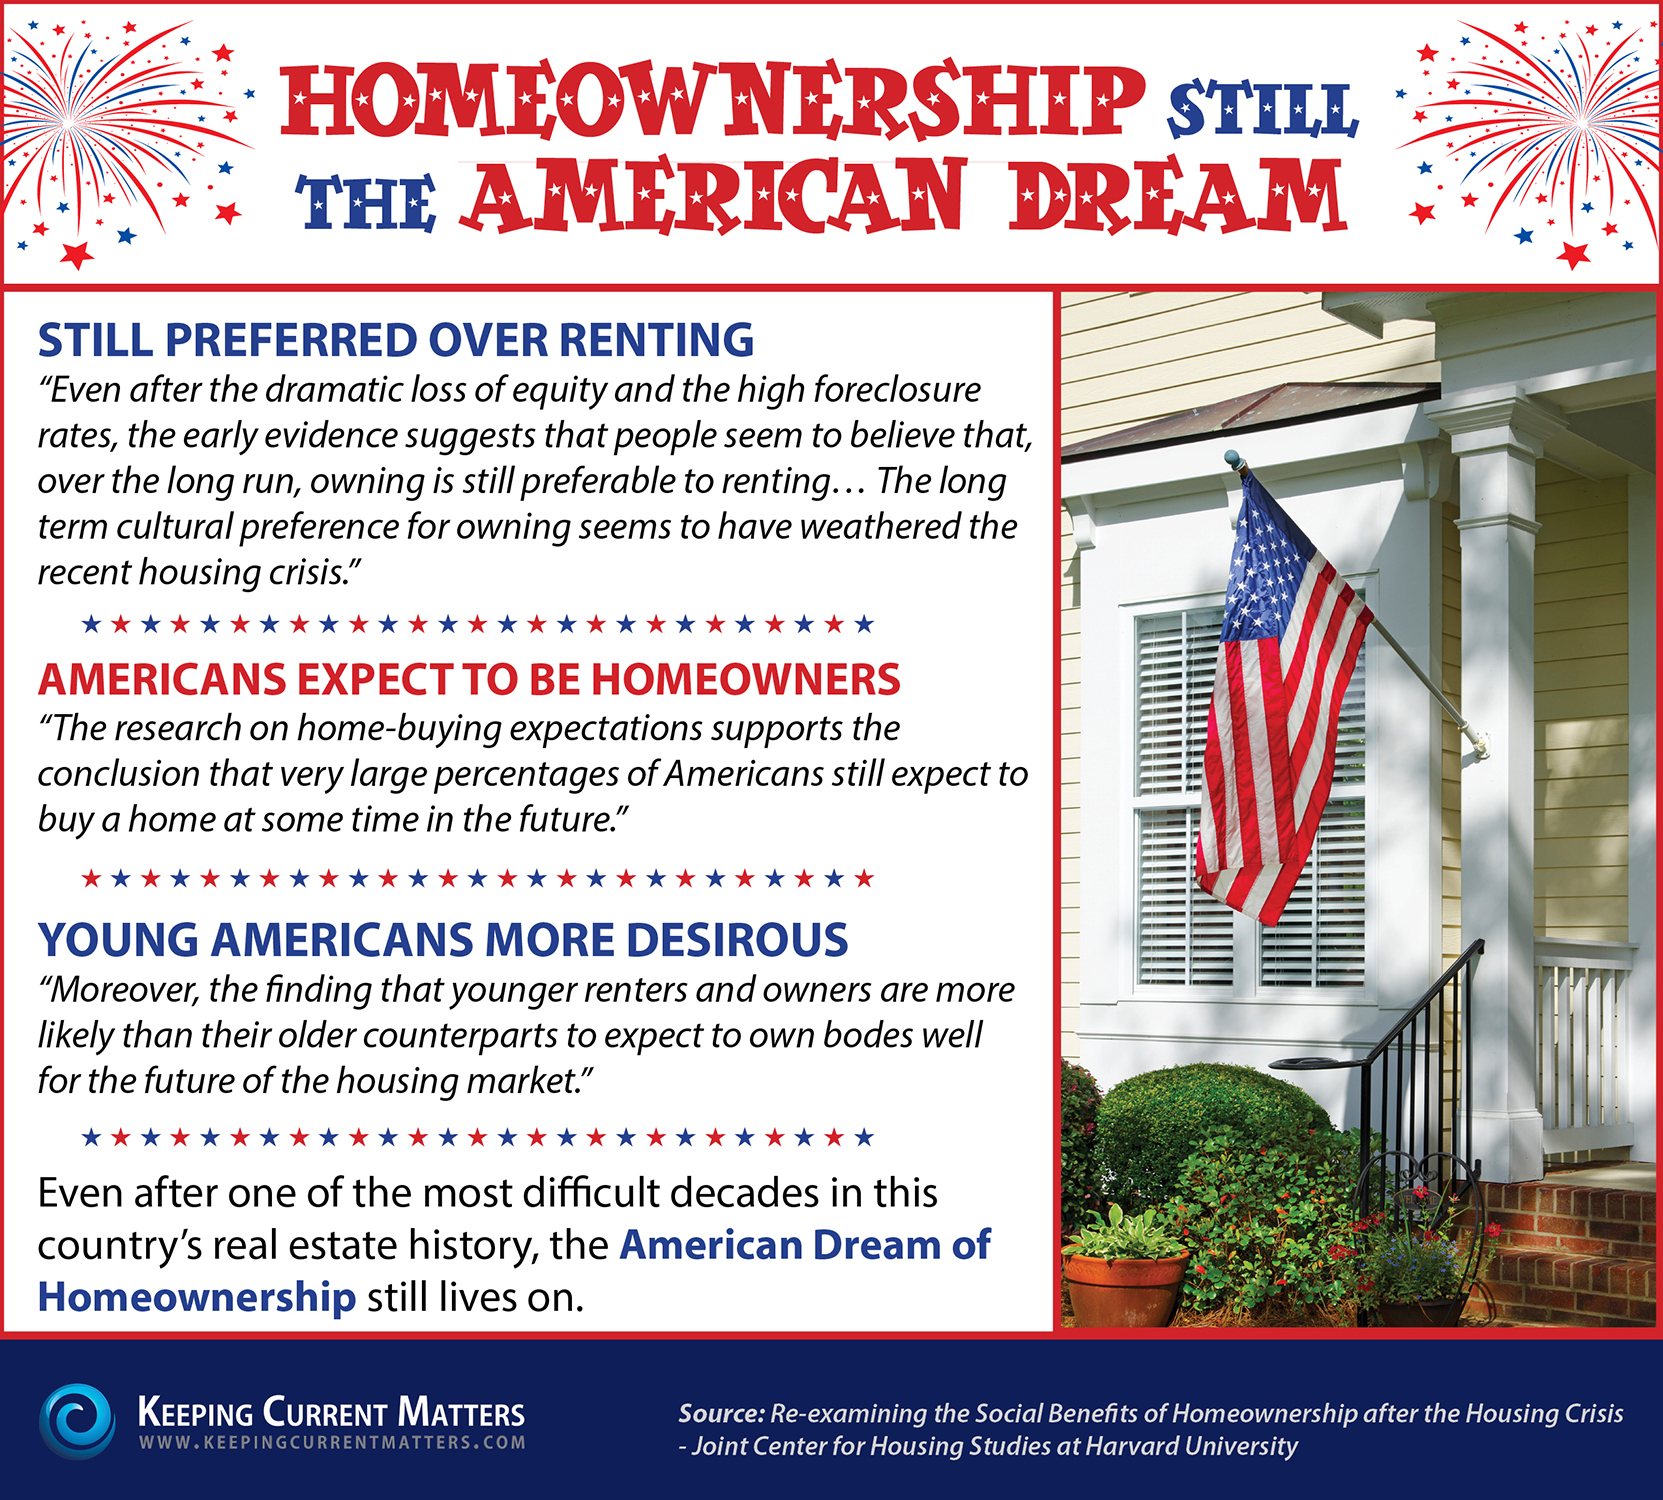 homeownership still the american dream infographic keeping current matters. Black Bedroom Furniture Sets. Home Design Ideas